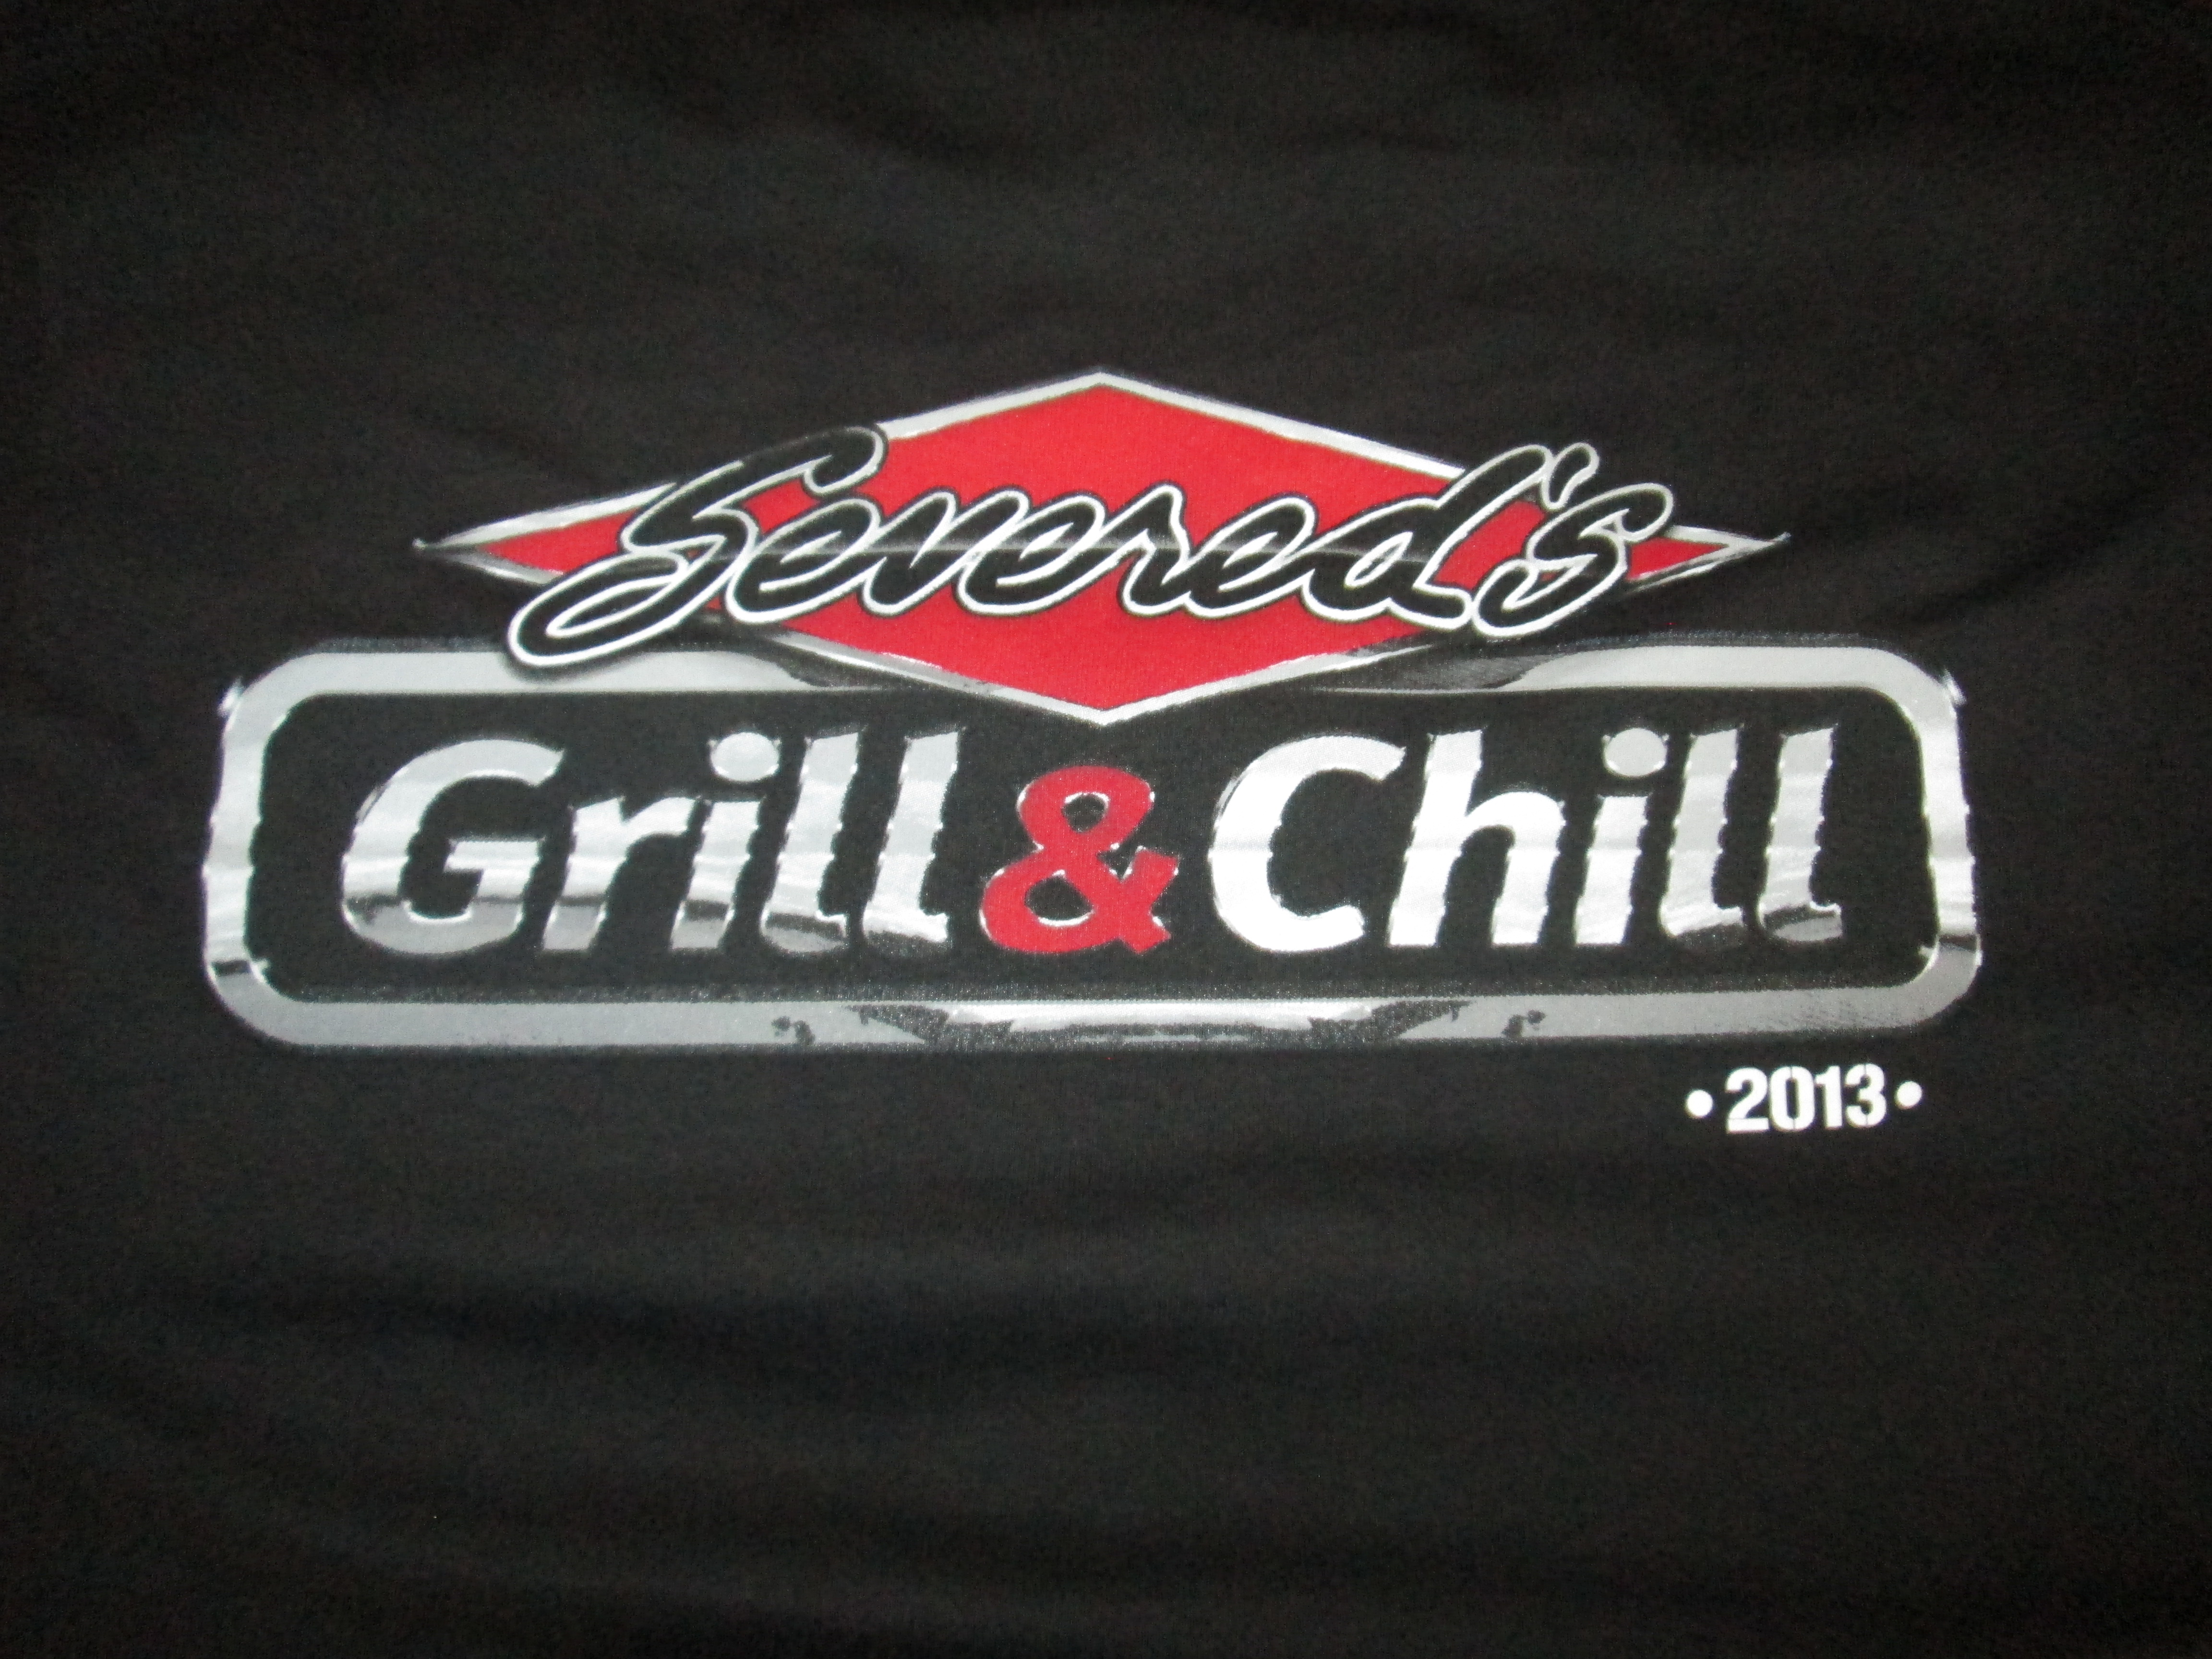 Grill and chill 2013